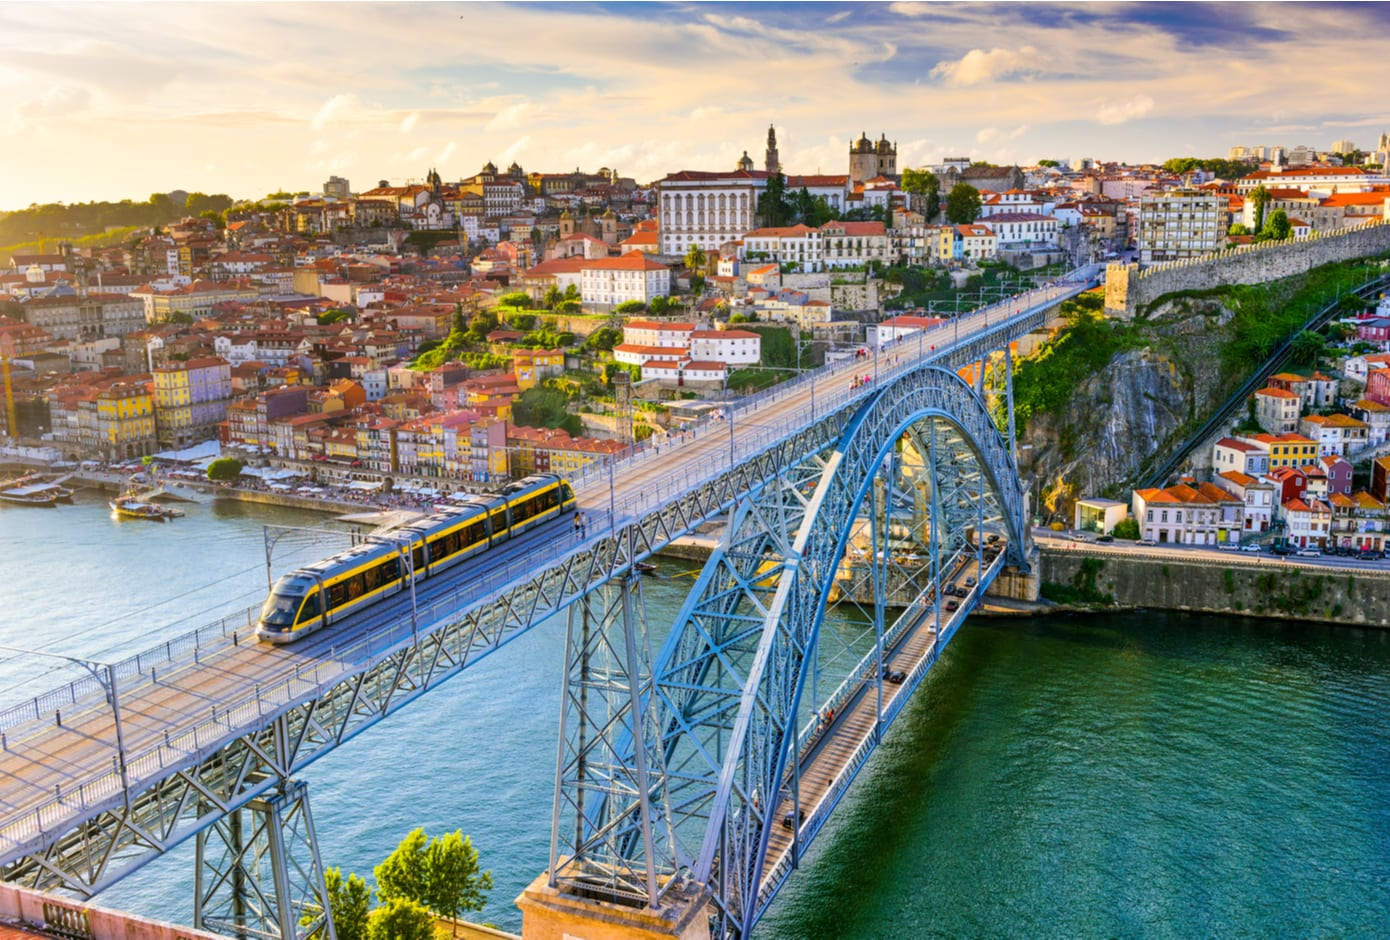 Aerial view of the Luís I Bridge, the Douro River, and the centre of Oporto.